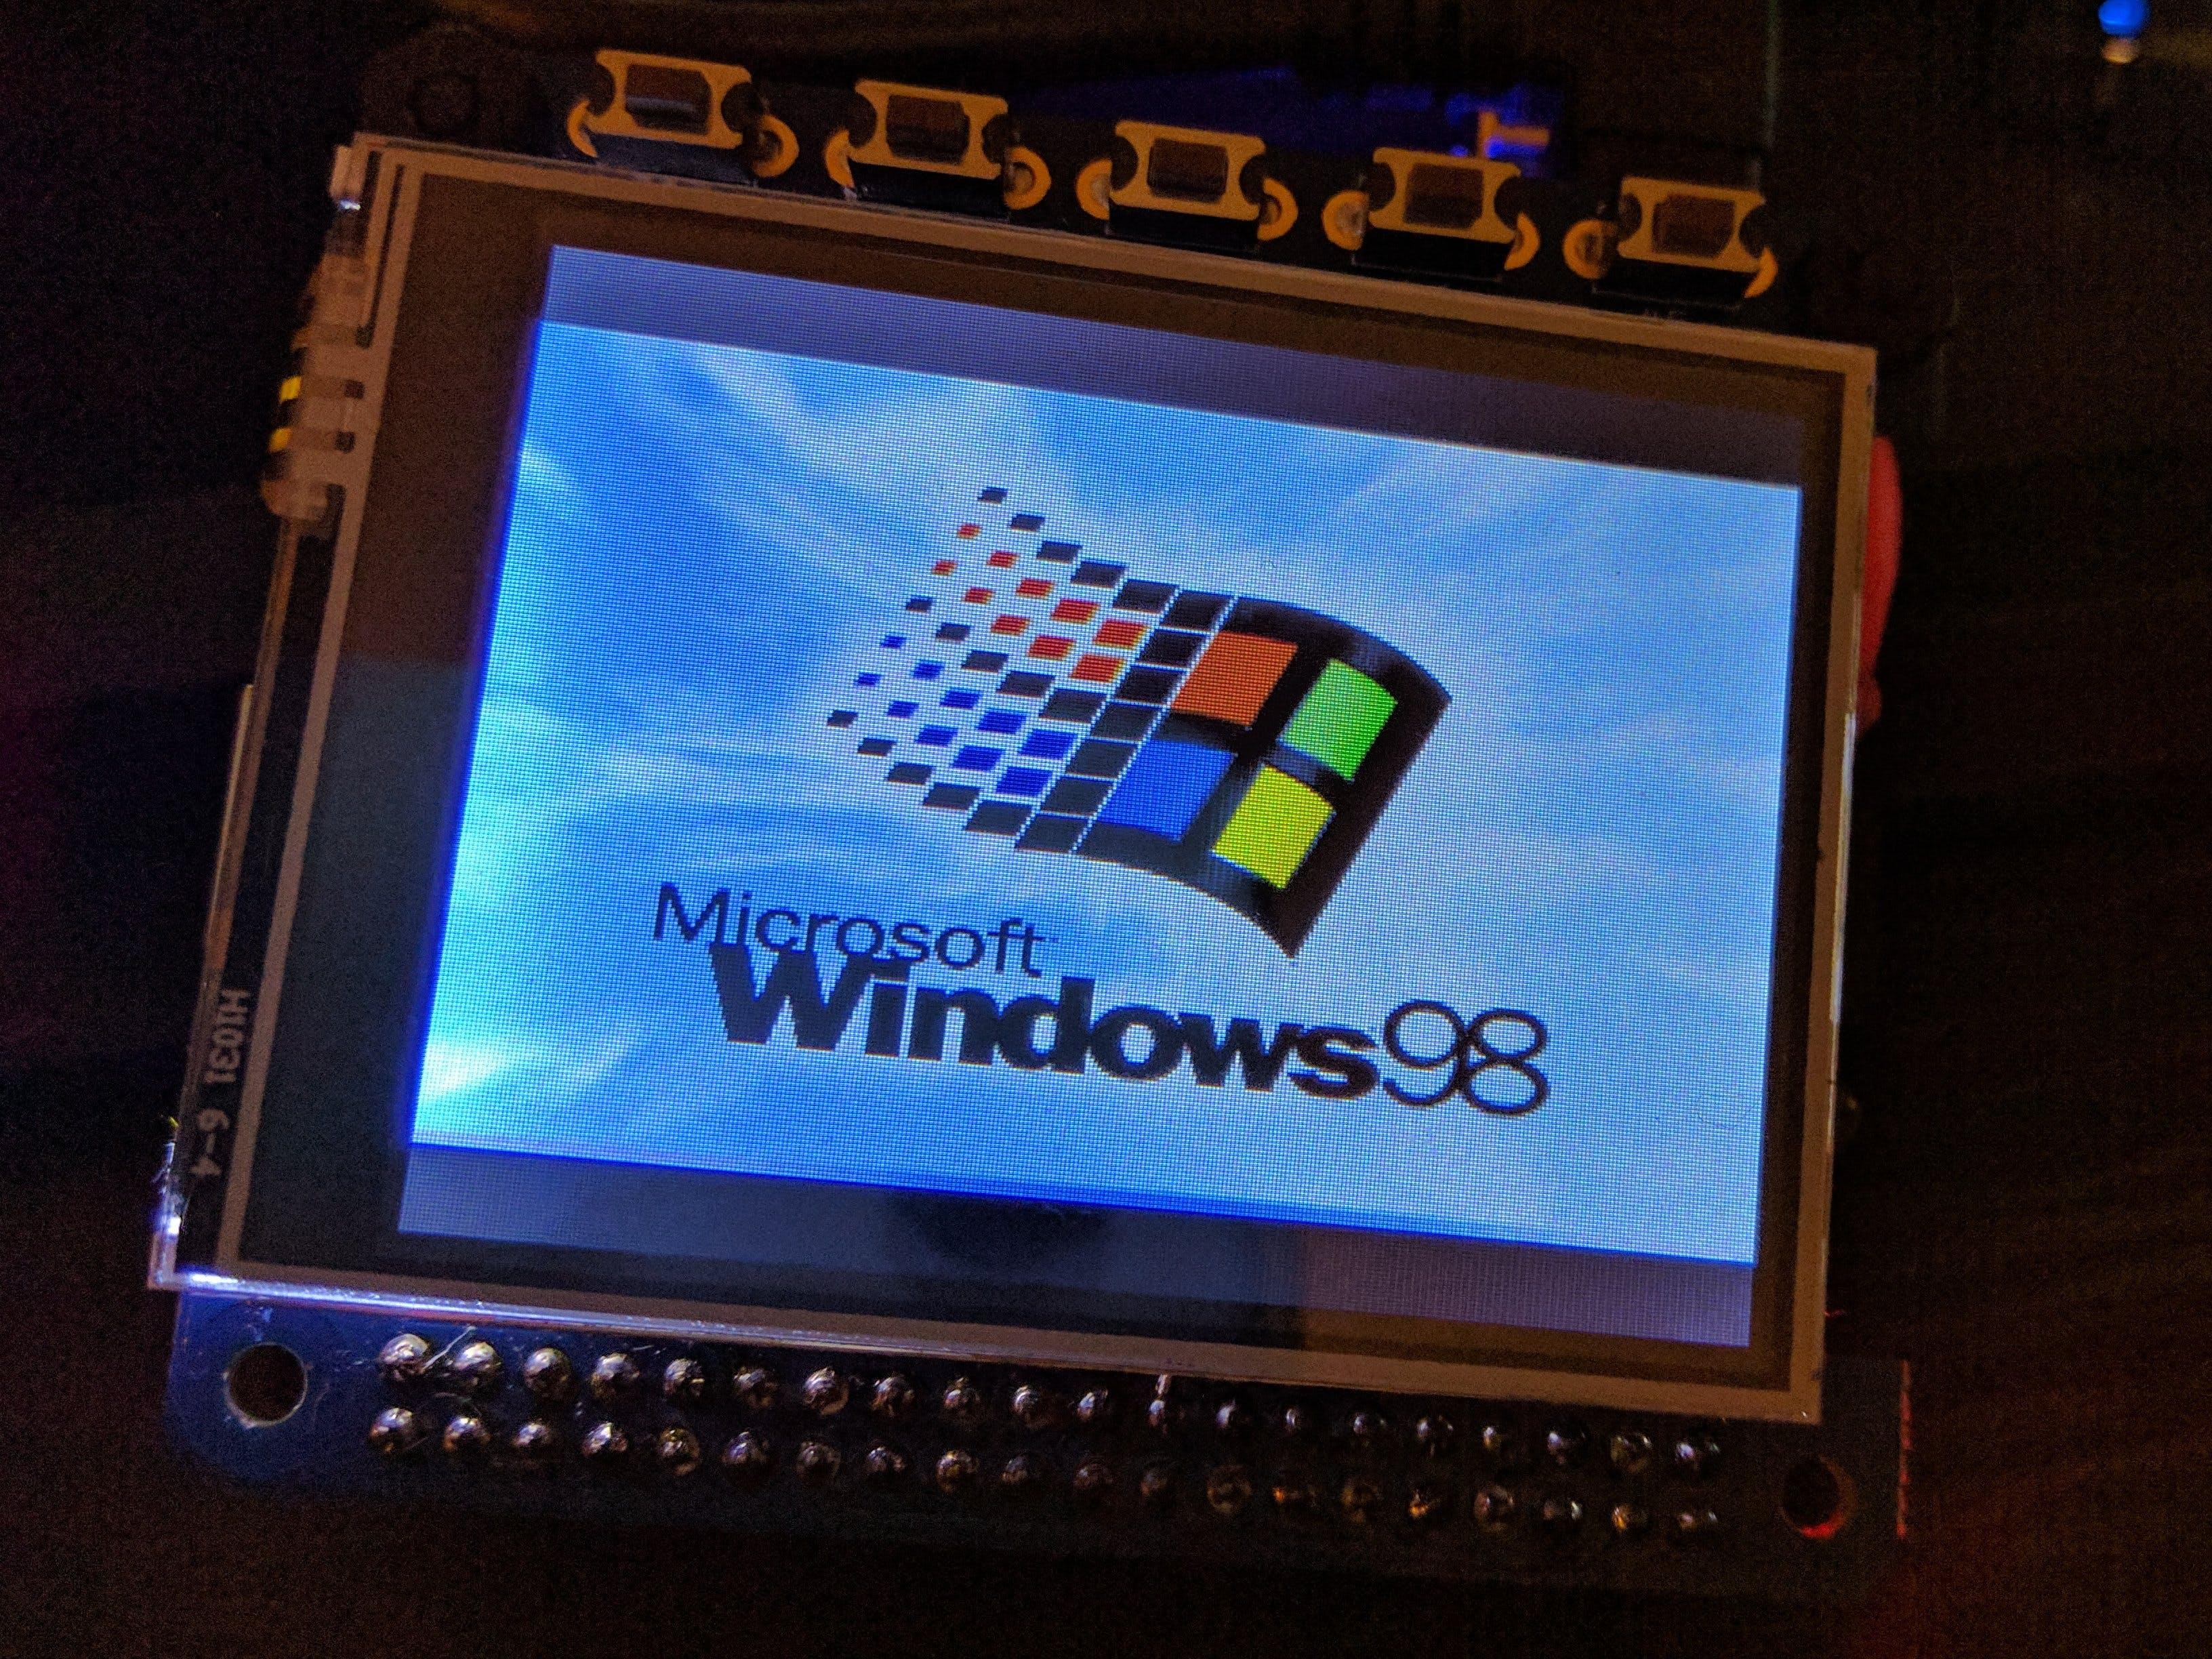 Raspberry Pi wristwatch with Windows 98